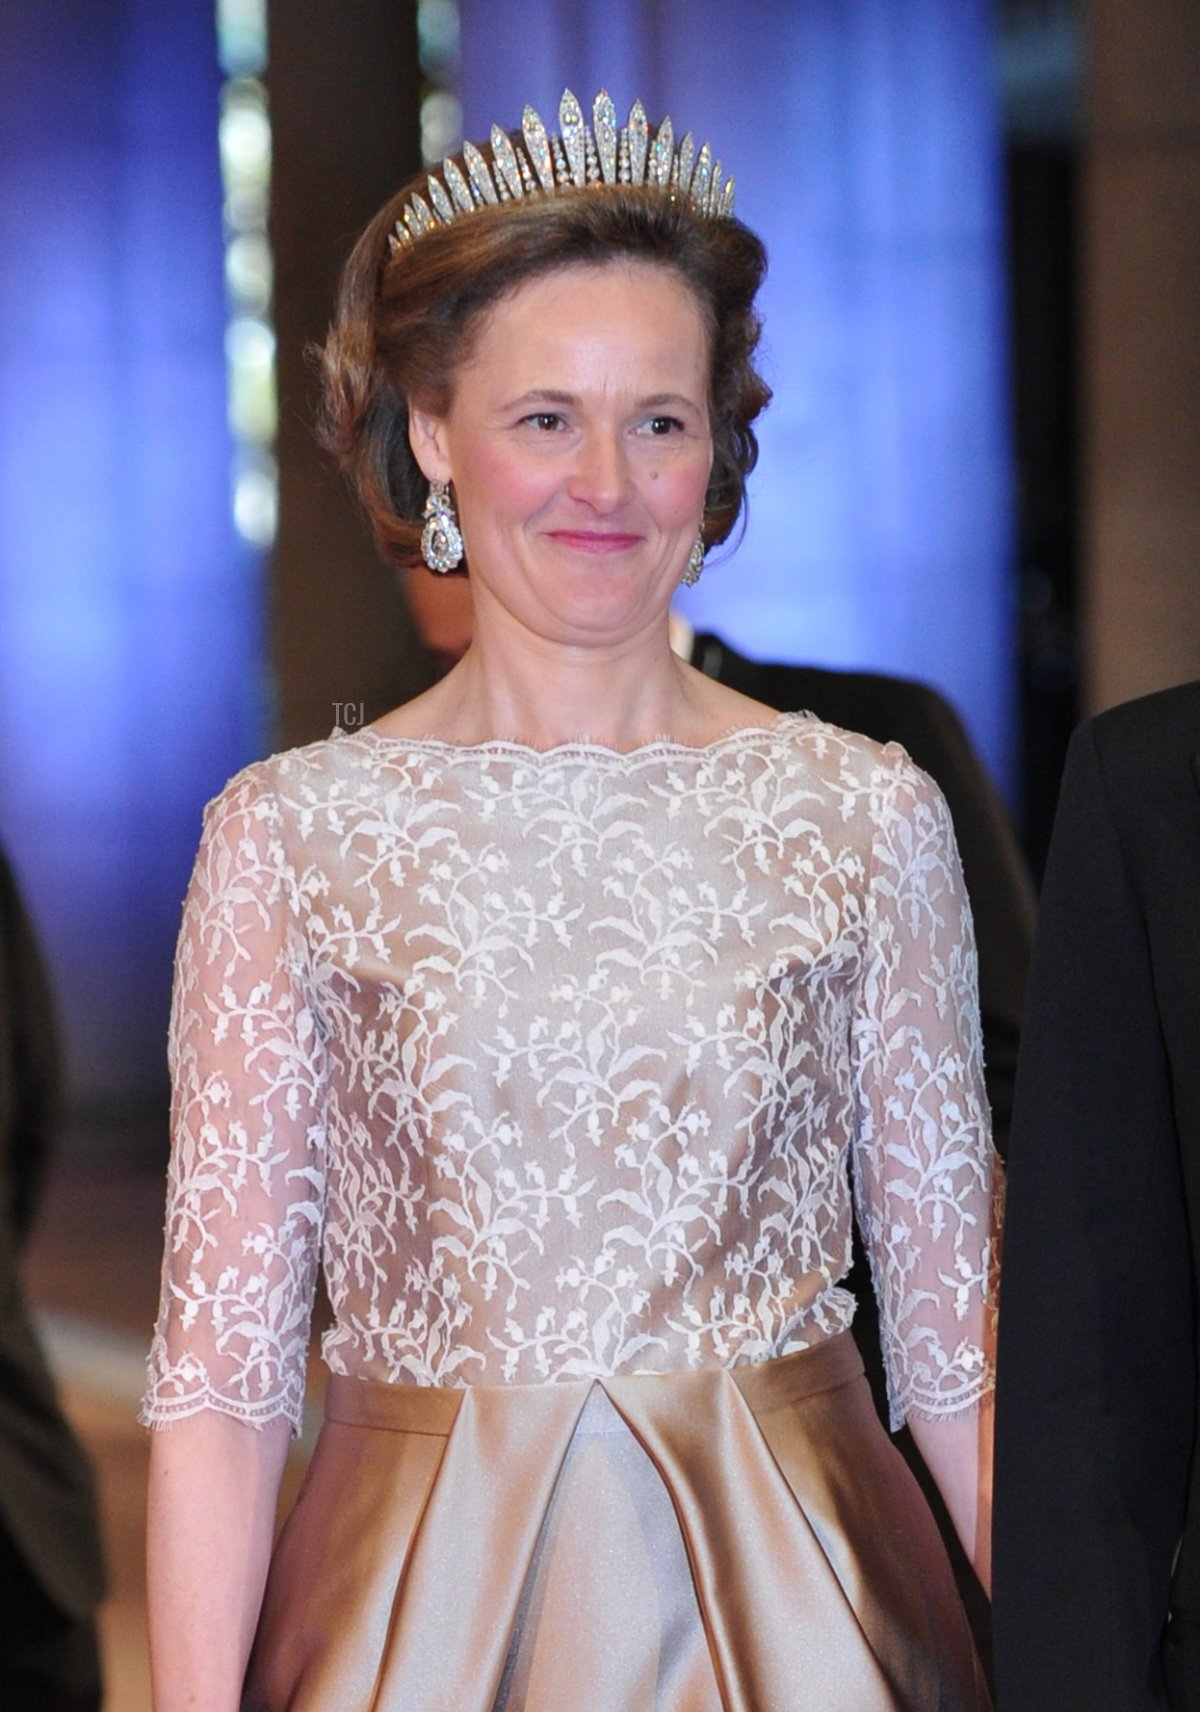 Princess Sophie of Liechtenstein and Hereditary Prince Alois of Liechtenstein attend a dinner hosted by Queen Beatrix of The Netherlands ahead of her abdication in favour of Crown Prince Willem Alexander at Rijksmuseum on April 29, 2013 in Amsterdam, Netherlands